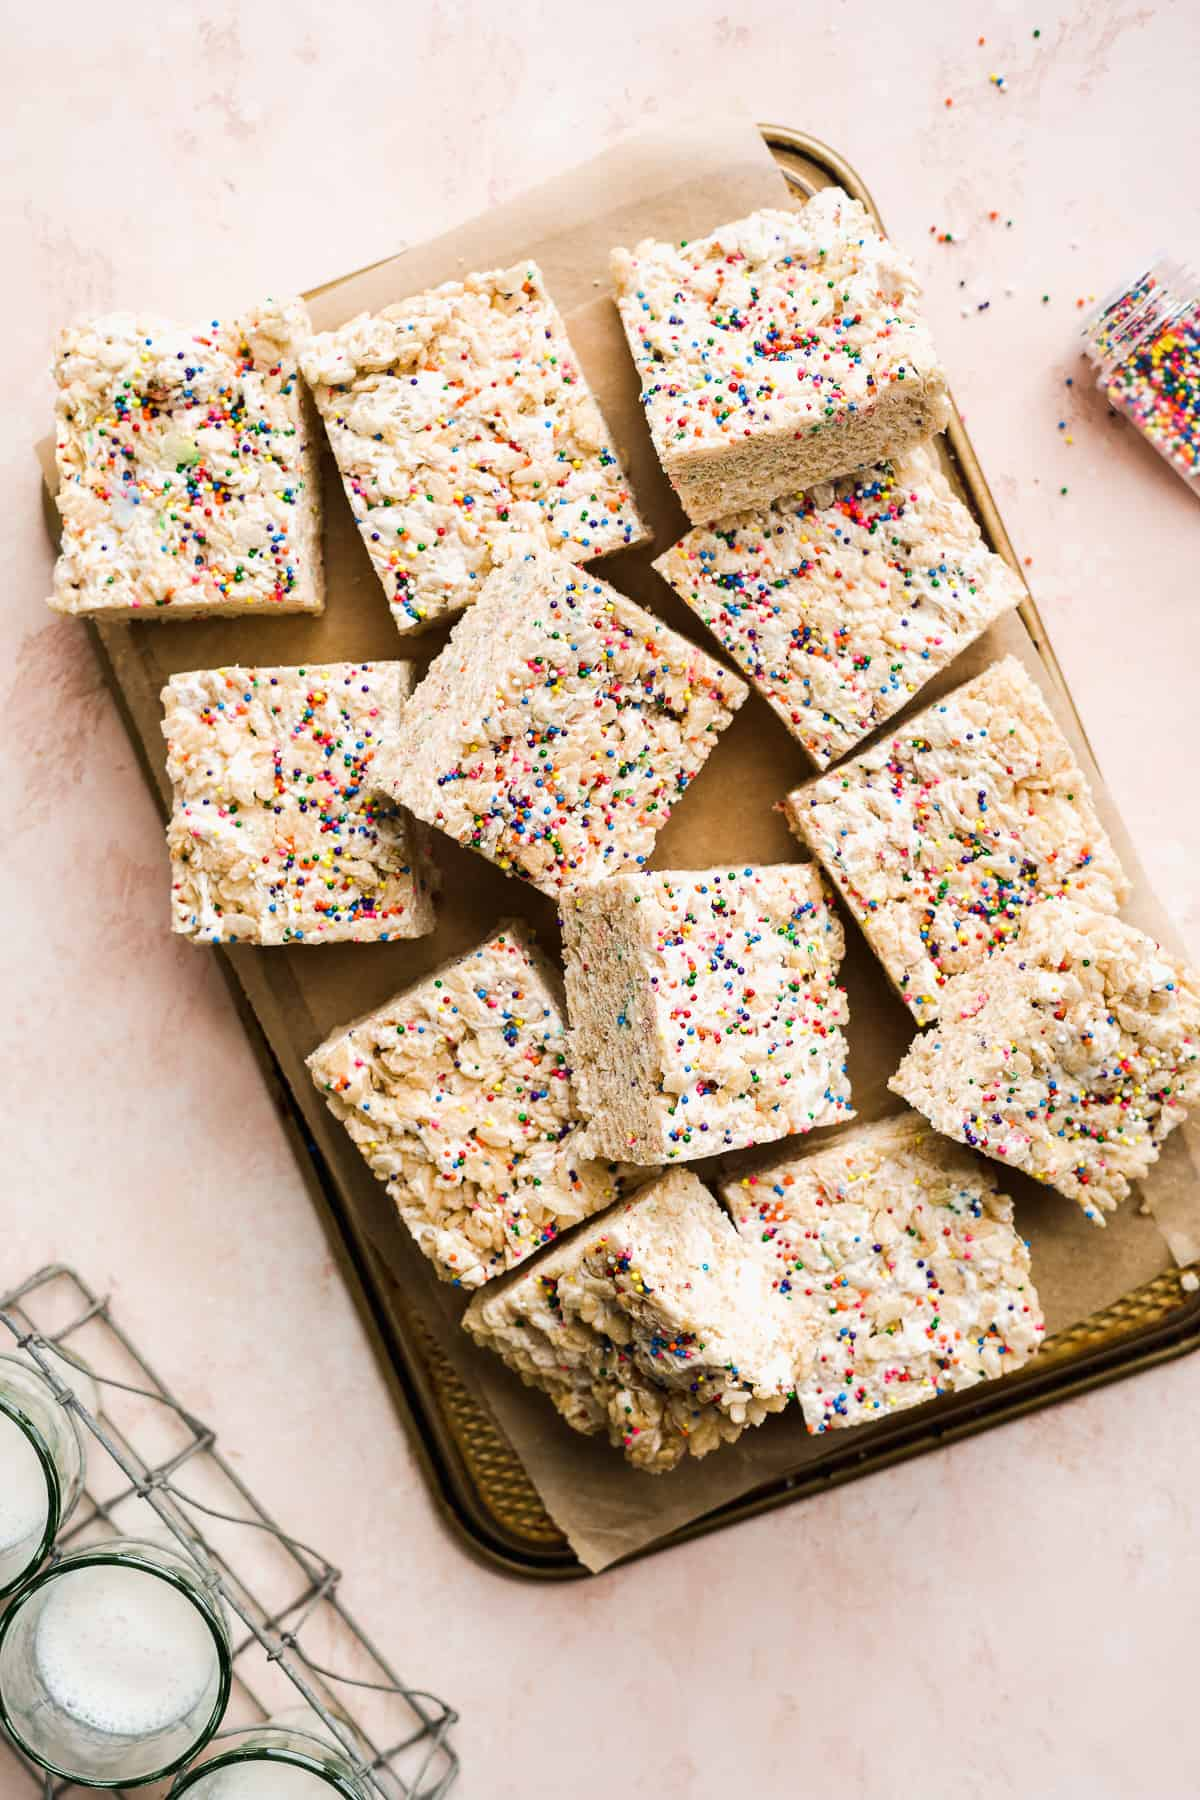 Rice krispie treats with sprinkles cut into squares on top of an upside down baking pan